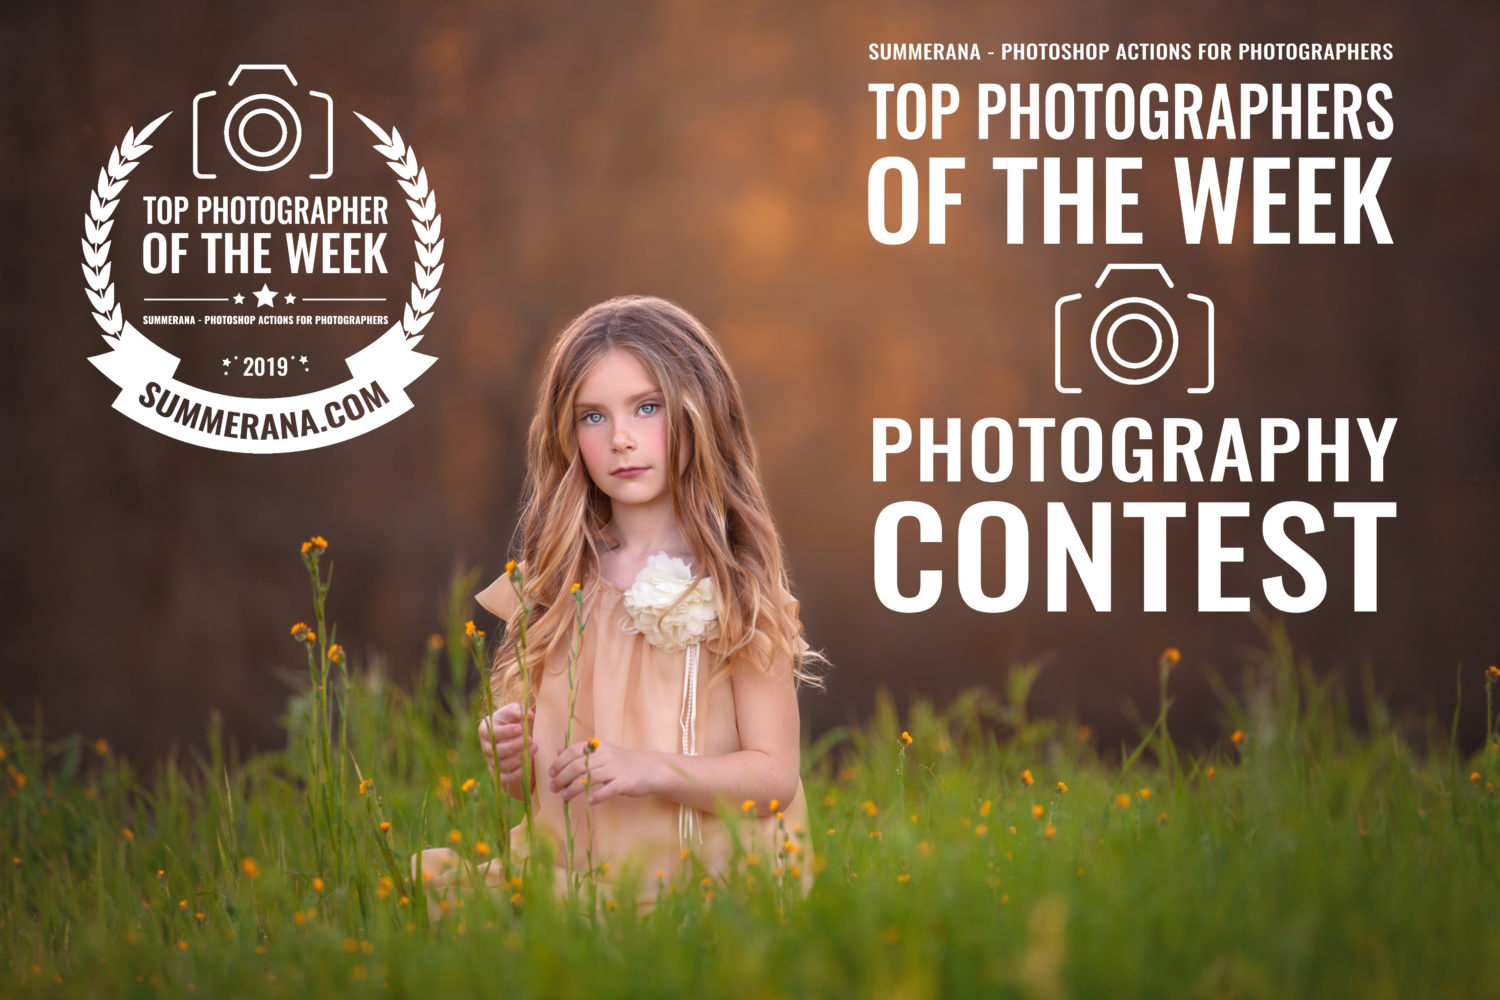 summerana-photoshop-actions-for-photographers-top-photographers-photo-contest